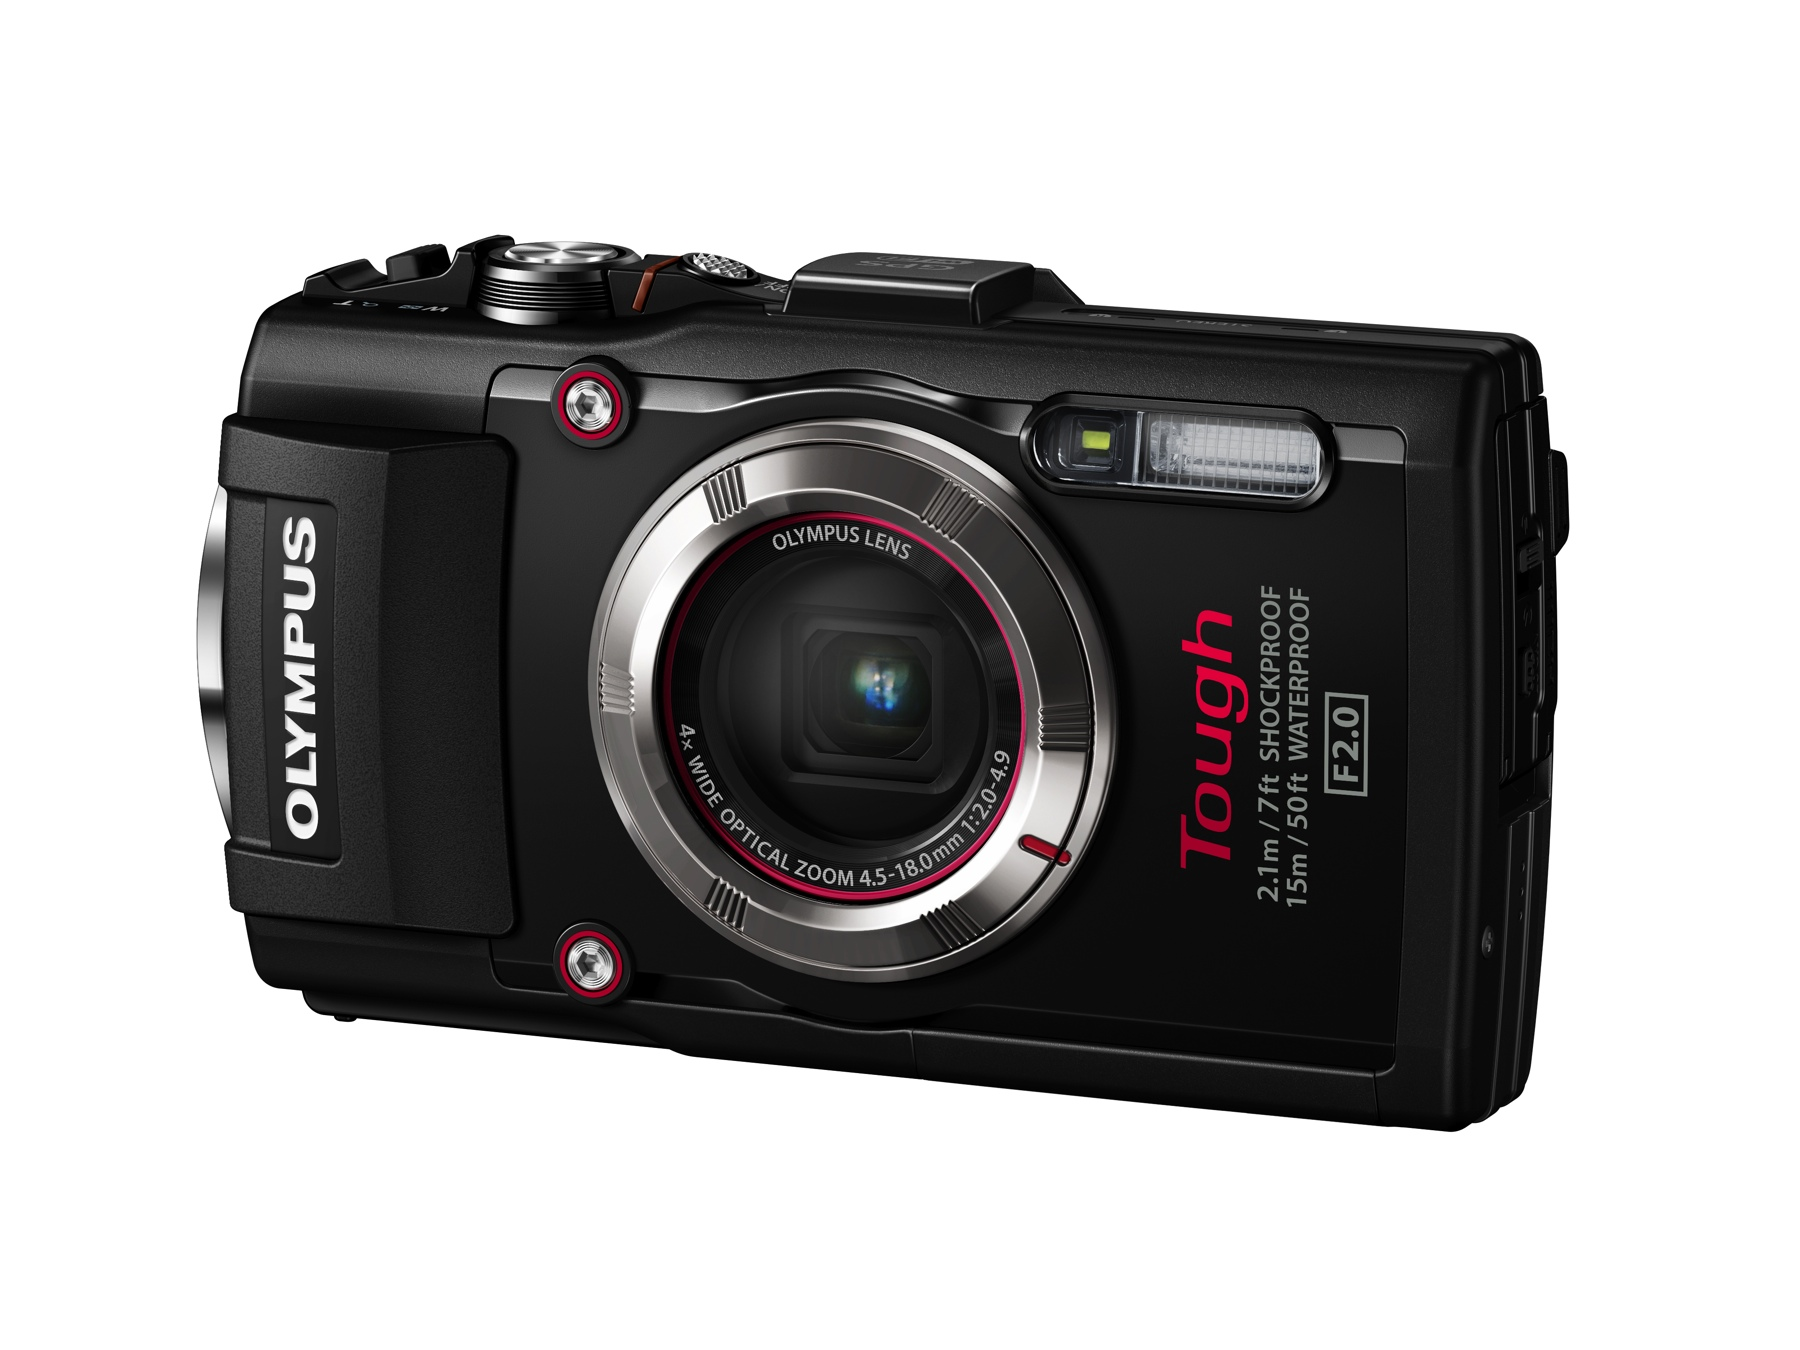 olympus-tg3-tough-camera-7